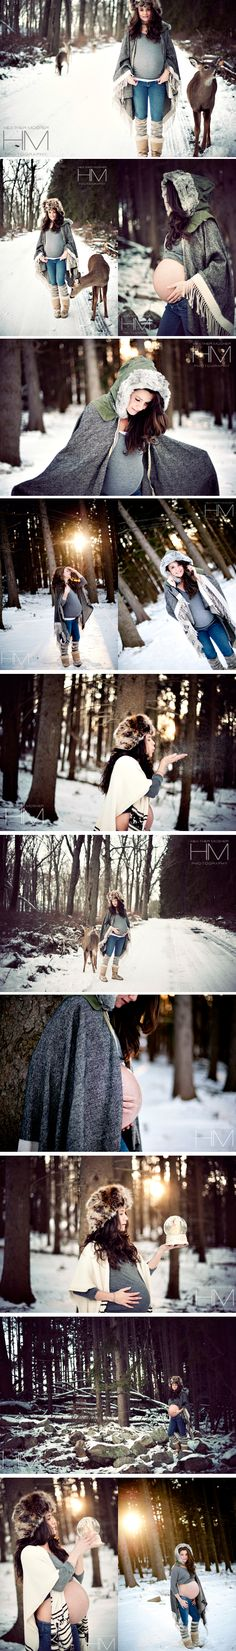 Heather Mosher Photography - Snow Maternity Winter pregnancy NYC maternity newborn childrens photographer